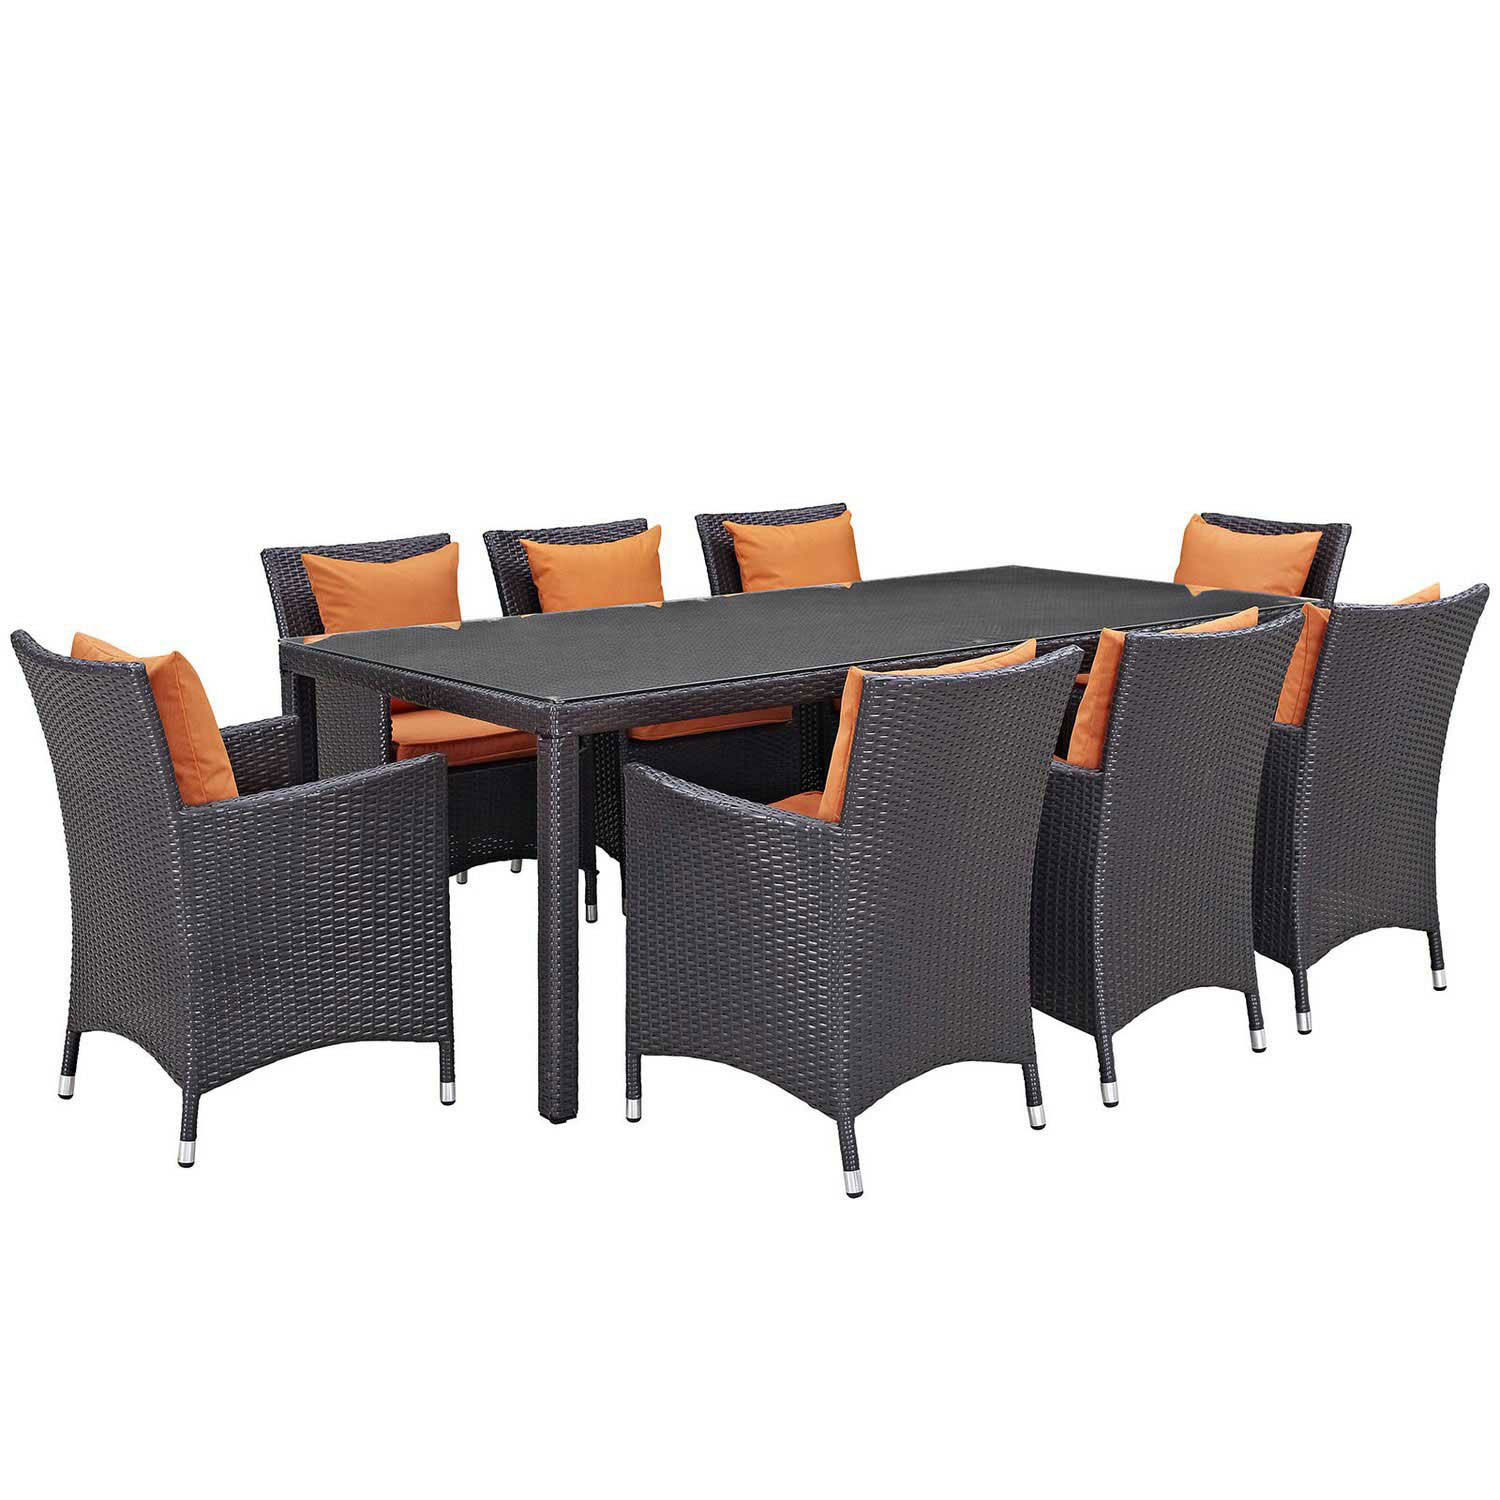 Modway Convene 9 Piece Outdoor Patio Dining Set - Espresso Orange